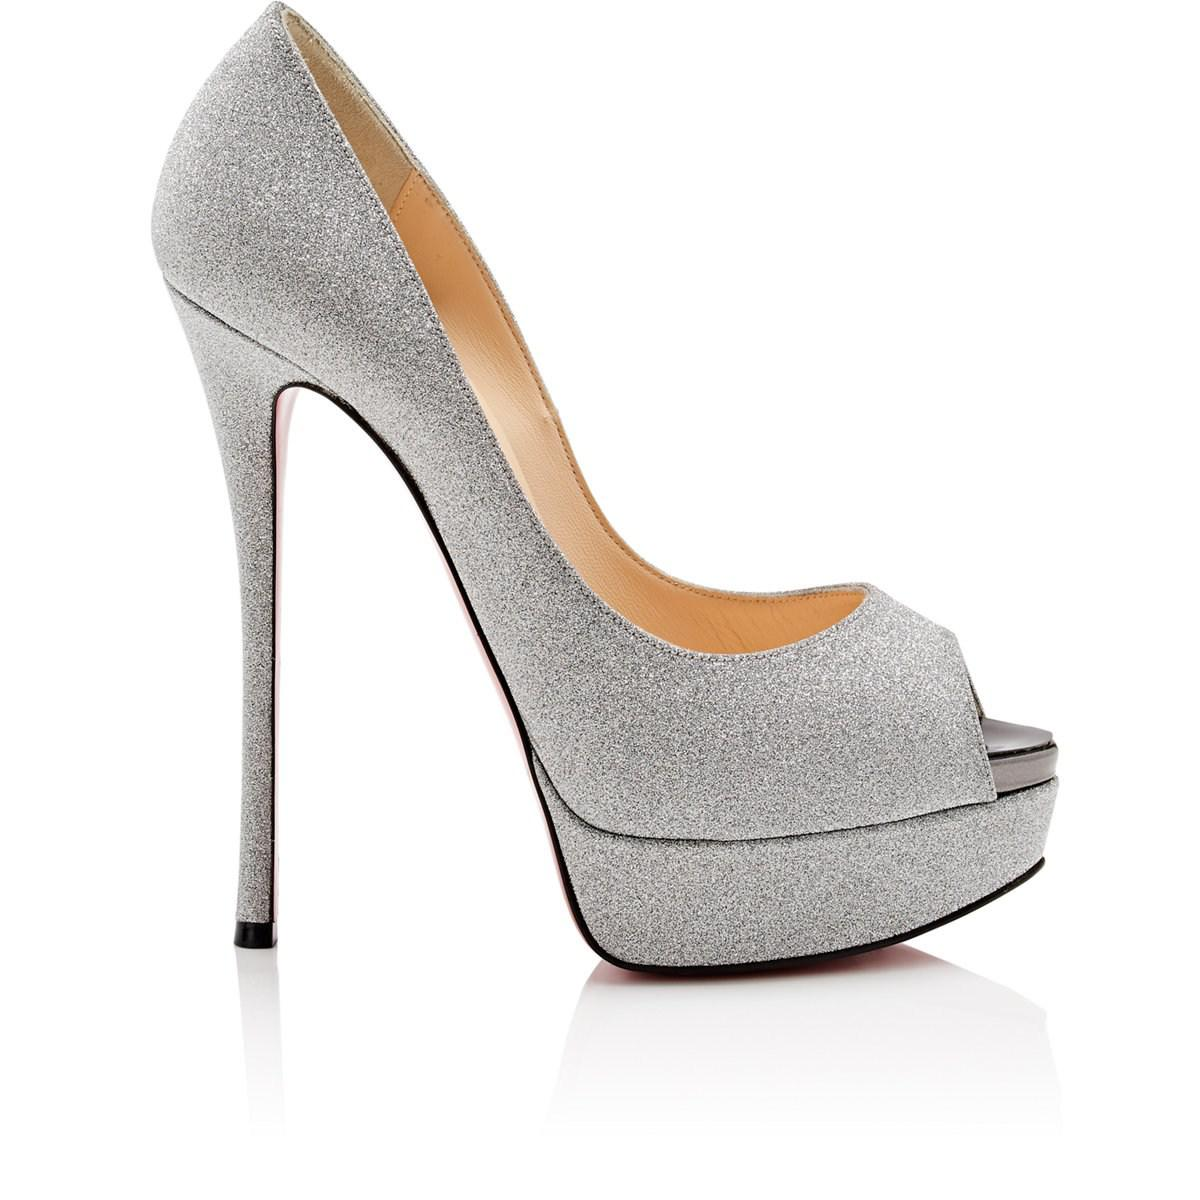 ddeded3efc42 Christian Louboutin. Women s Metallic Fetish Glitter Platform Court Shoes